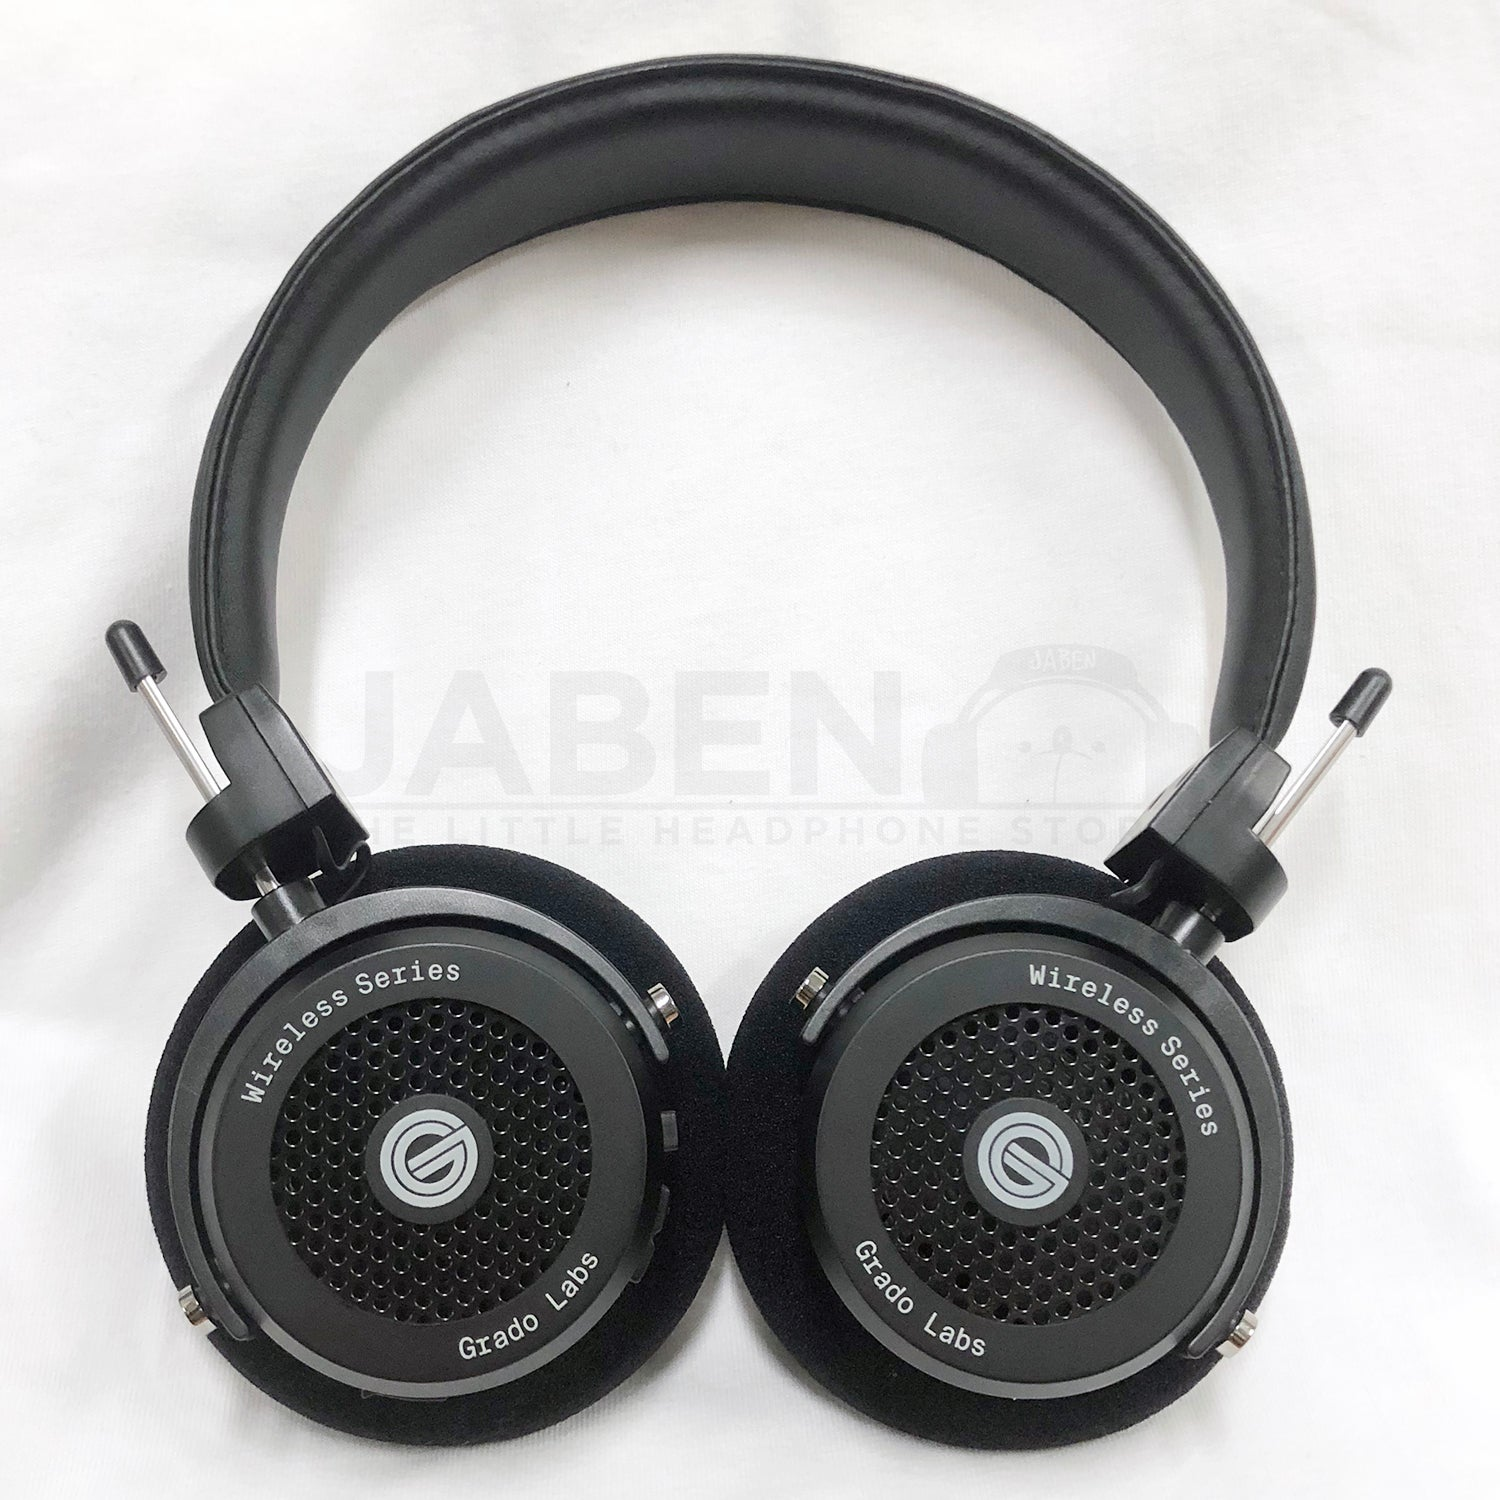 [Combo] Grado Wireless Series GW100 + FREE 1Custom SA02 CIEM